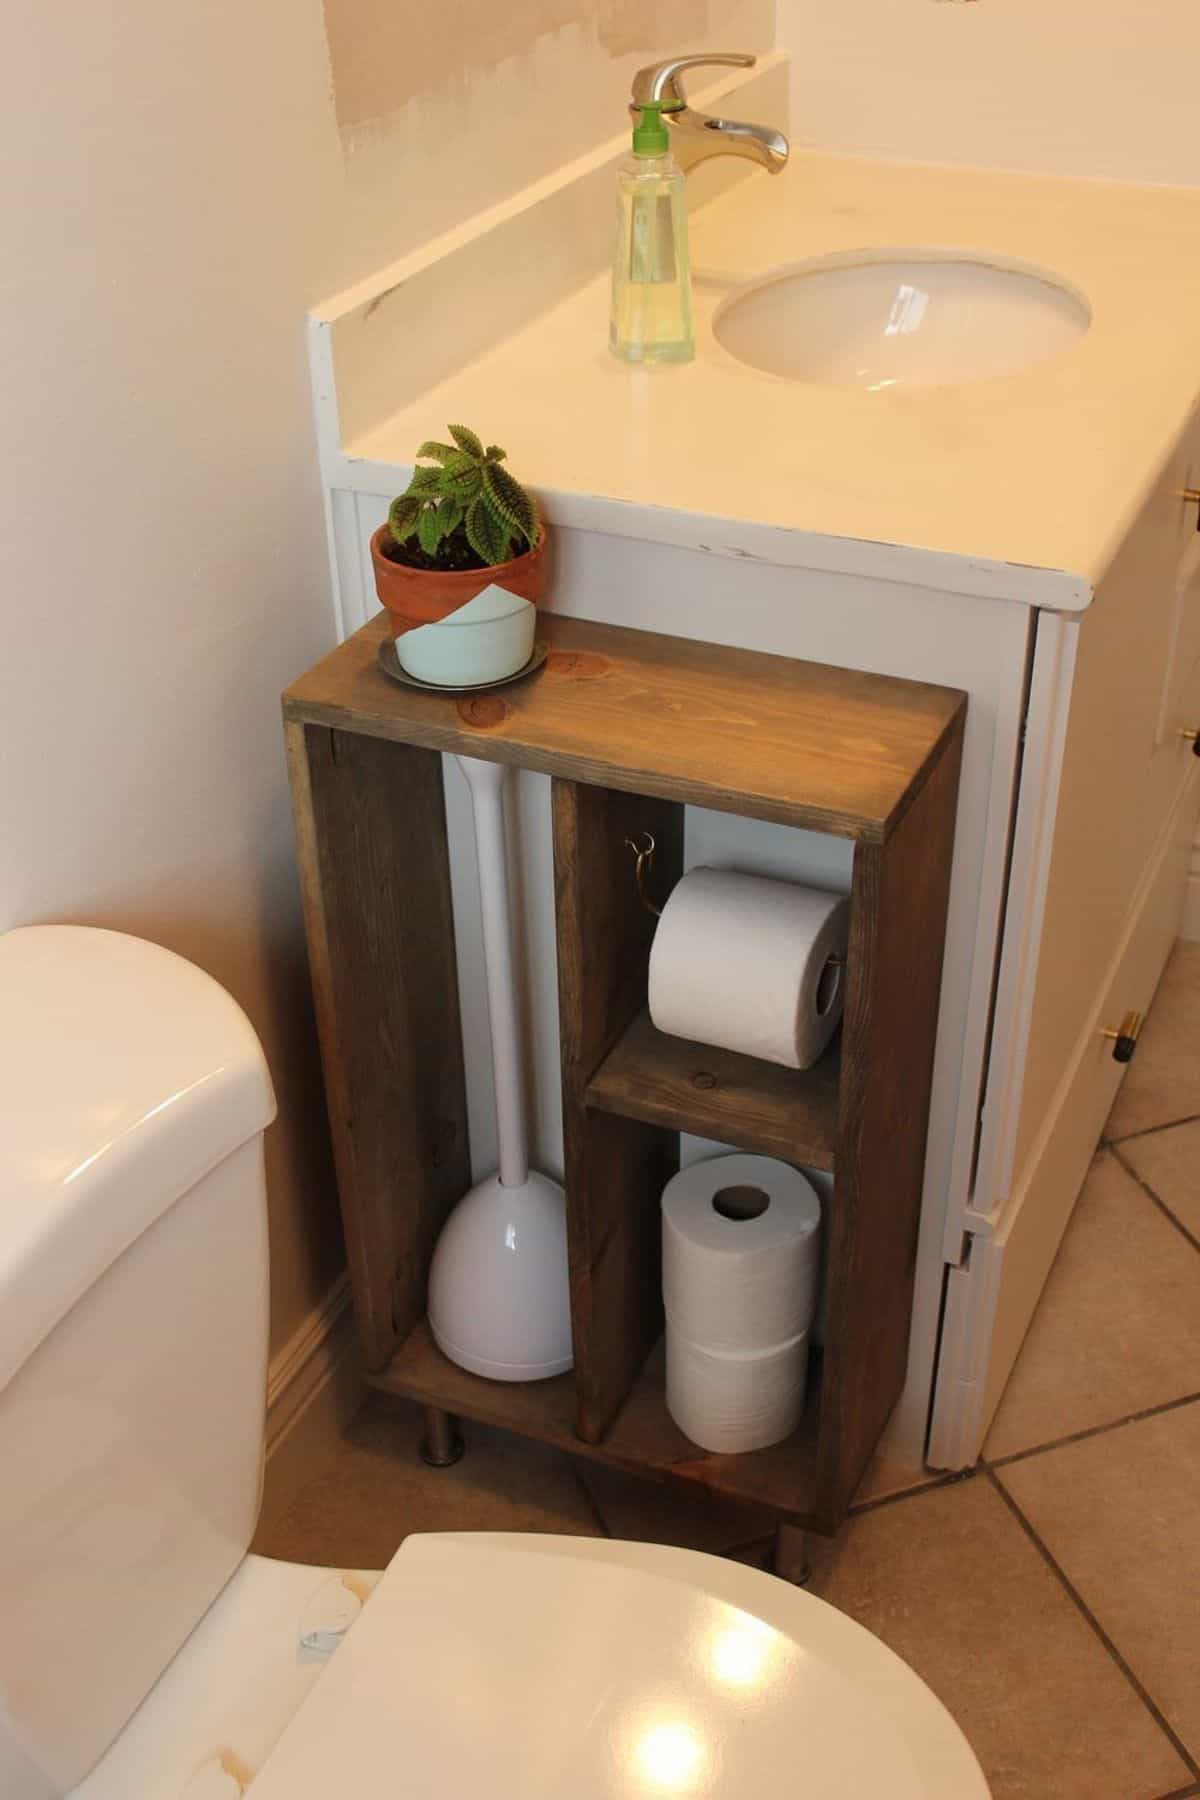 Toilet Paper Storage with Plunger Shelf